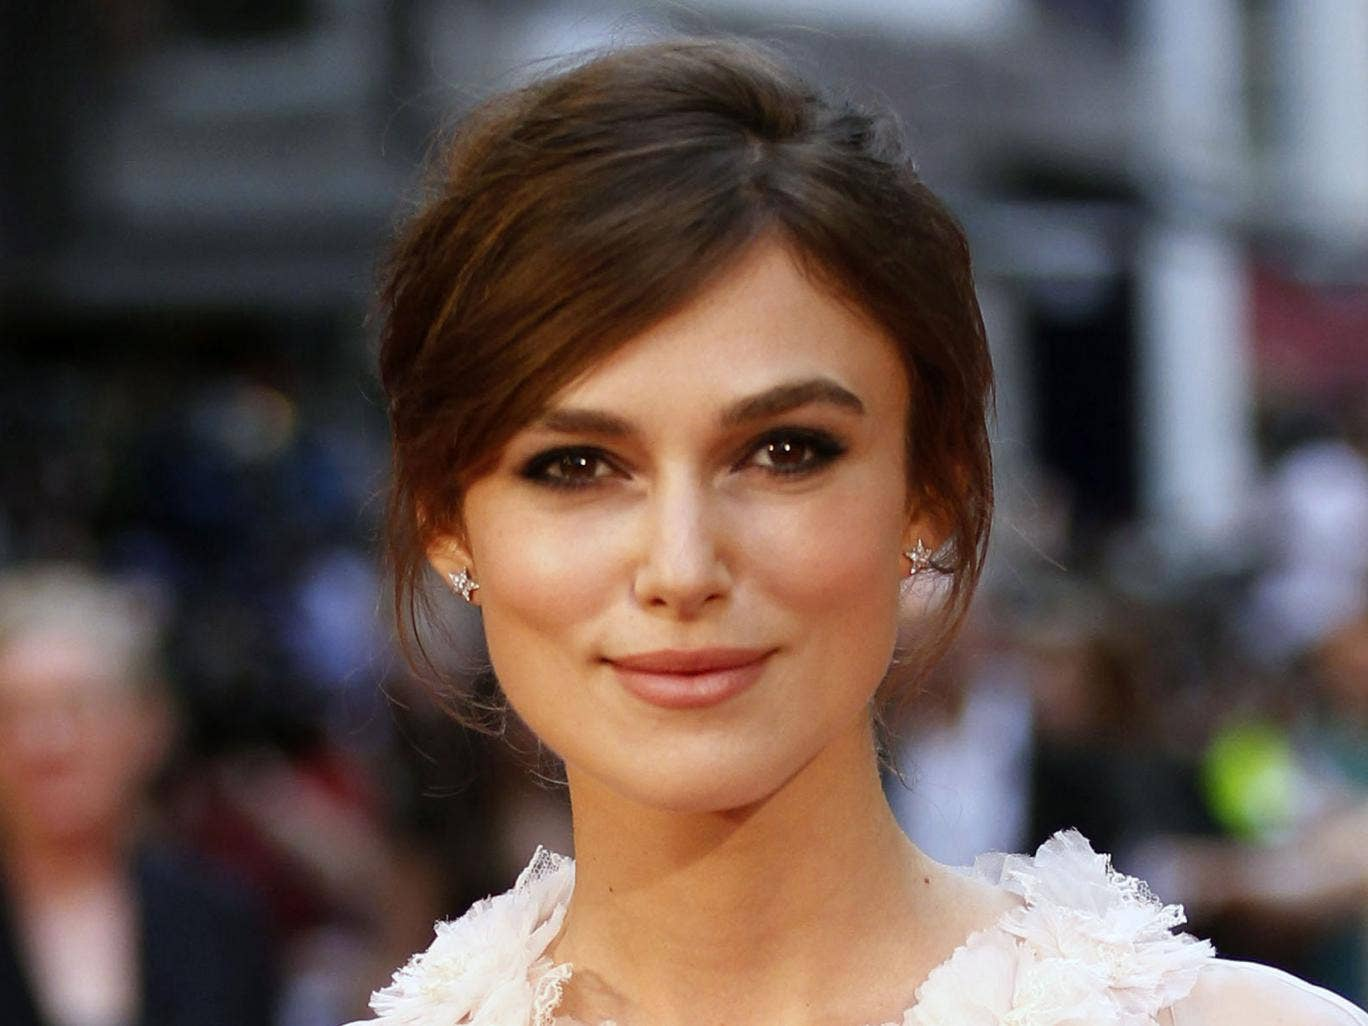 Keira Knightley and musician James Righton married in a low-key ceremony in the south of France